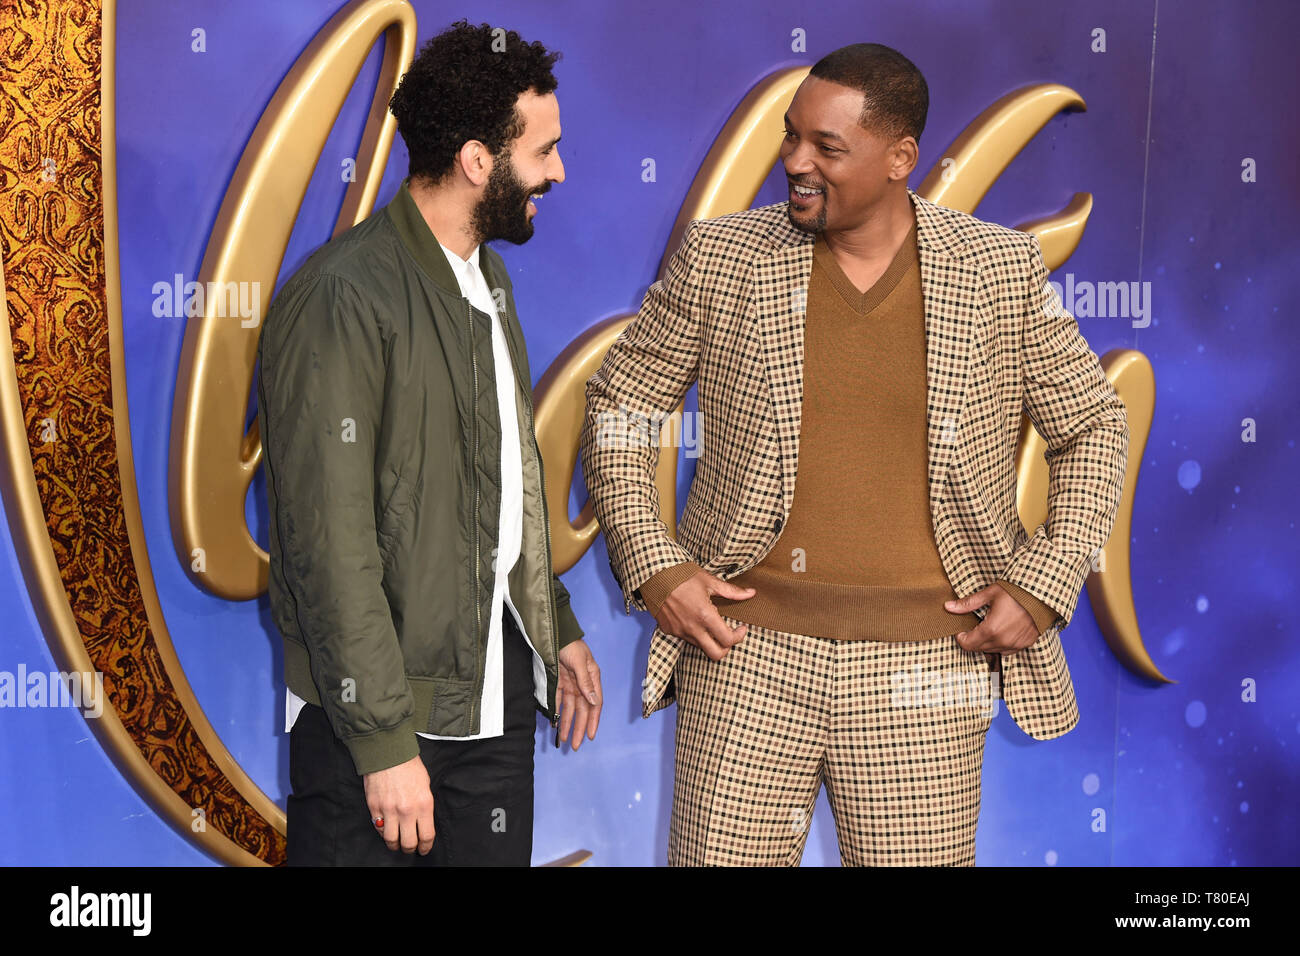 "London, UK. 09th May, 2019. LONDON, UK. May 09, 2019: Marwan Kenzari & Will Smith at the ""Aladdin"" premiere at the Odeon Luxe, Leicester Square, London. Picture: Steve Vas/Featureflash Credit: Paul Smith/Alamy Live News Stock Photo"